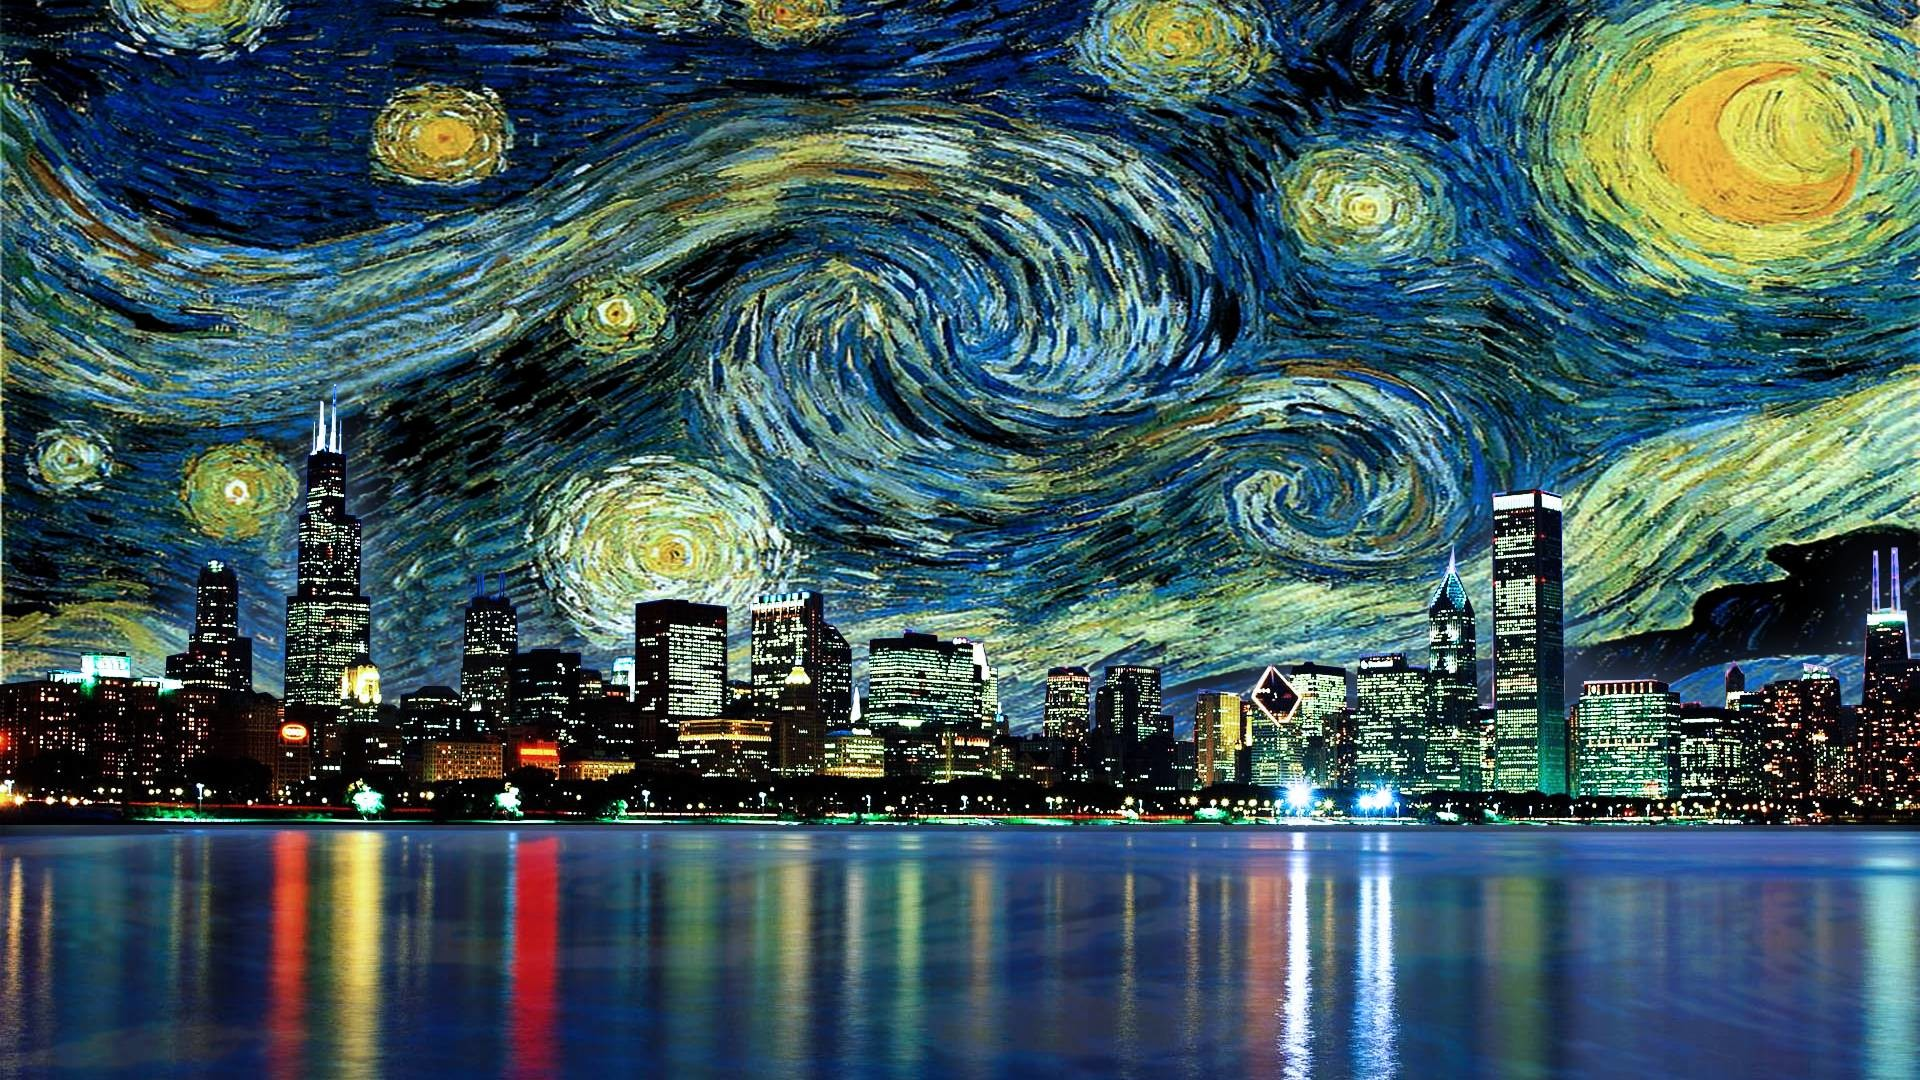 1920x1080 A Starry Night Sky in Chicago